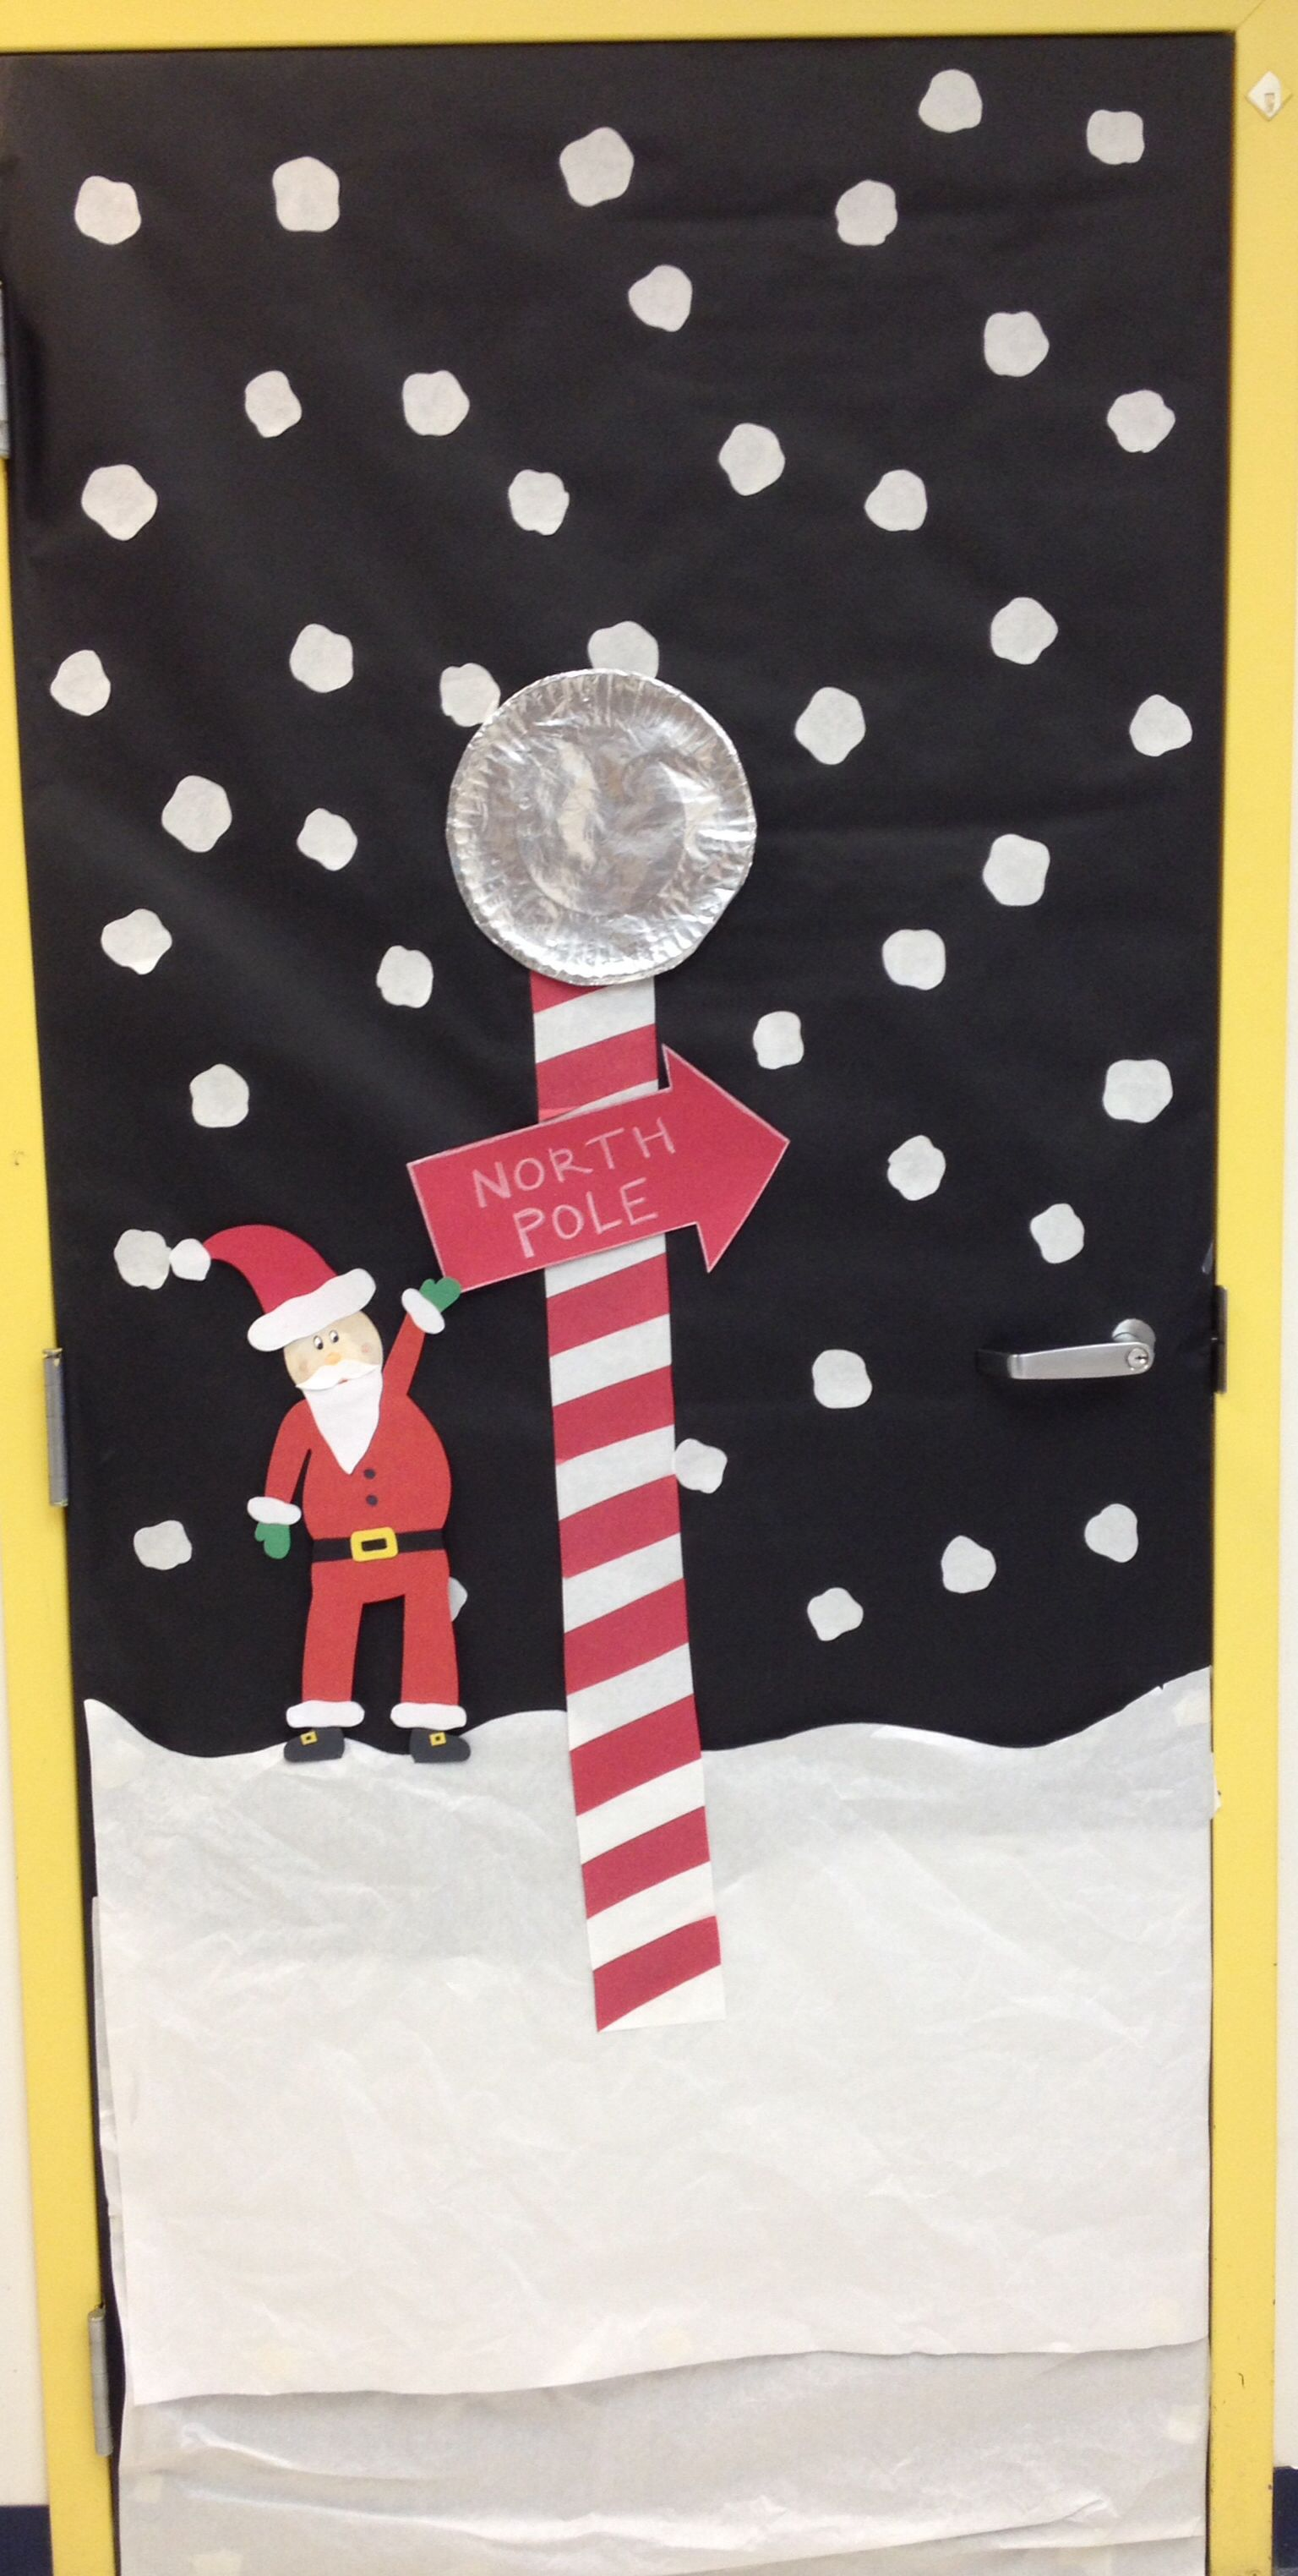 North Pole Christmas Decorations For Doors School Art